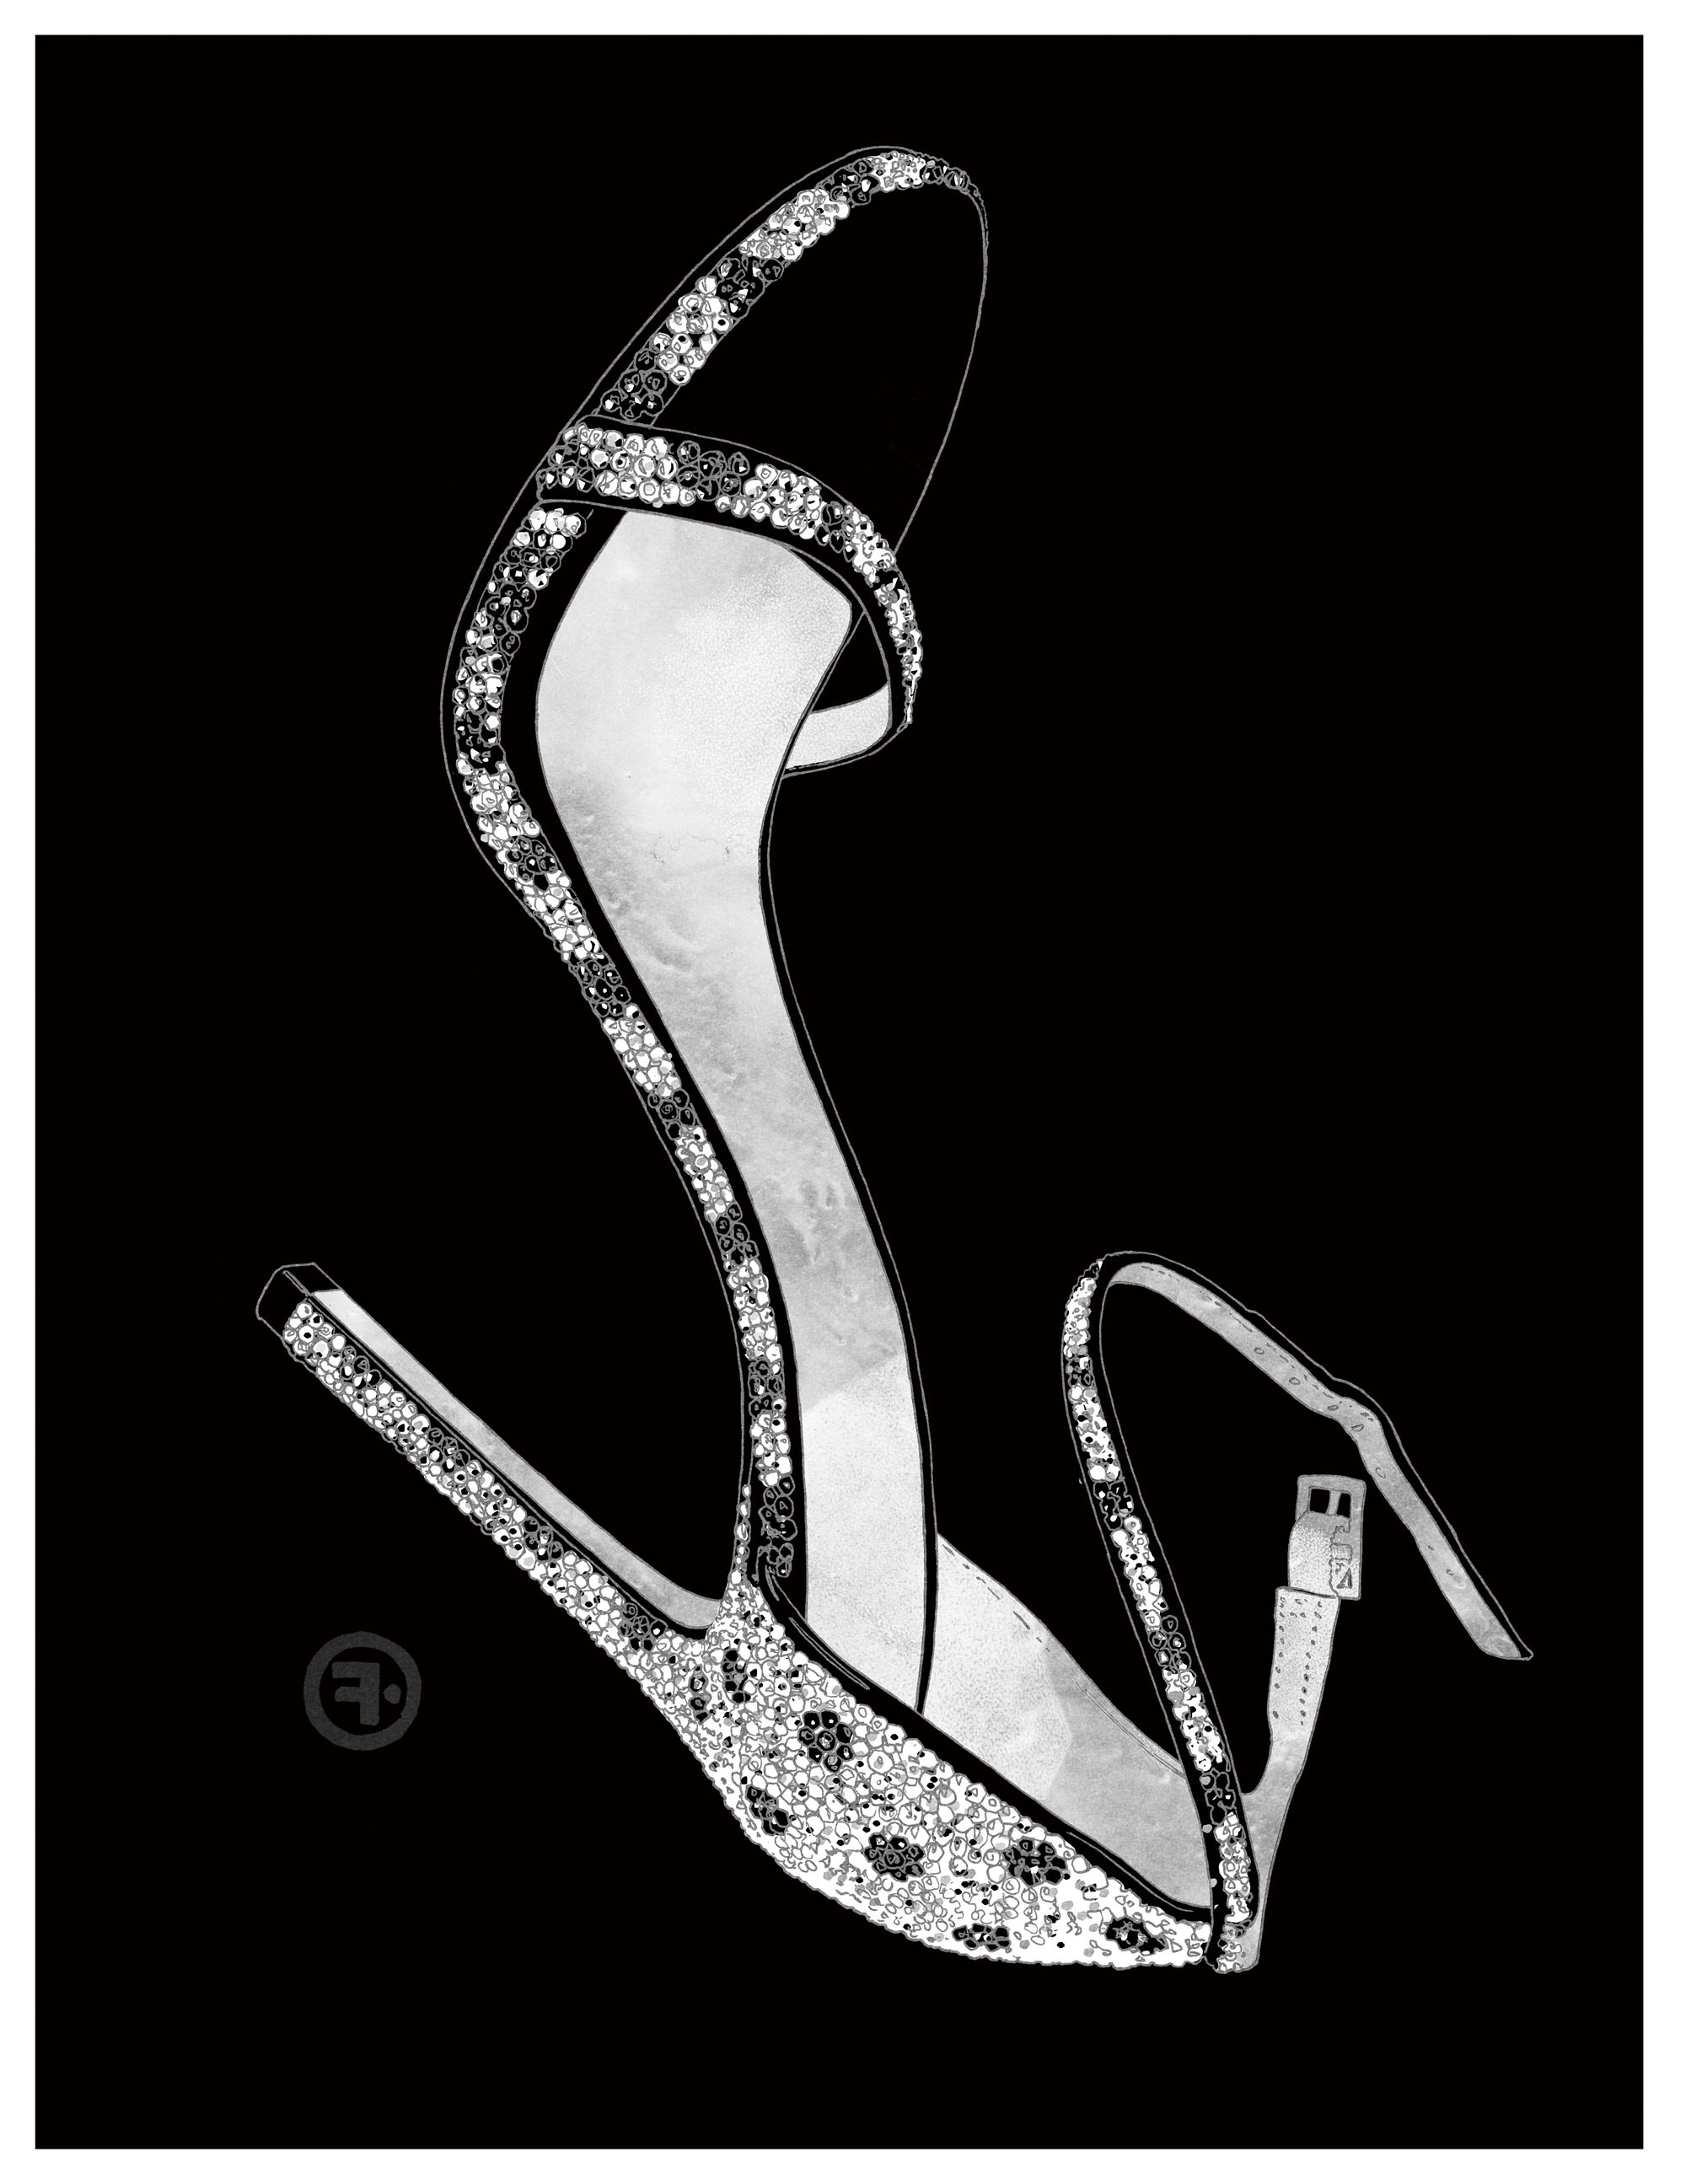 """Illustration Francois Berthoud  A few years back his $500,000 sandals, the Diamond Dream, hit the headlines. """"We wanted the Oscars to be a global showcase for our shoes, and I think we can safely it say it was"""", Stuart Weitzman rightly congratulates himself. On the feet of actress Anika Noni Rose at the 2007 ceremony, the stiletto heels encrusted with real diamonds were caught on camera by the world's media and passions were unleashed… Suddenly even the youngest fashion bloggers had heard of the brand Stuart Weitzman, who over the years has become the go-to shoe man known for combining two very American values: glamour and functionality. For the first value a cohort of stars compete on Hollywood red carpets shod in the ultra-light Nudist sandal that so sensually reveals the foot - Blake Lively, Jennifer Lopez, Lady Gaga and even Gigi Hadid. For the second this architect of shoe design guarantees optimal comfort even on 12cm stiletto heels: """"I want women to smile when they wear my shoes,"""" Stuart Weitzman explains.  The New Yorker, both a seasoned designer and businessman, has relied on solid experience and reflection: more than a simple craft, the shoe and its sinuous curves have always been part of Stuart Weitzman's life; his father owned a factory in Massachusetts. As a young man he chose business studies without ever dreaming of joining the family business…but he did sell shoe designs for pocket money. """"The business took me by surprise, because my talent got noticed and rewarded,"""" he says today, """"But it took several years of experience to fine hone my objectives."""" The pioneering Stuart Weitzman launched his brand in 1986 based on a crucial factor: having his own factories. """"That allowed me the greatest of freedom and the utmost control, not only when it came to making my designs quickly and according to my own criteria, but also being able to adapt to the needs of the clients."""" And thus the Alex and Corkswoon platforms, the 5050, Lowland and Highland boots saw the"""